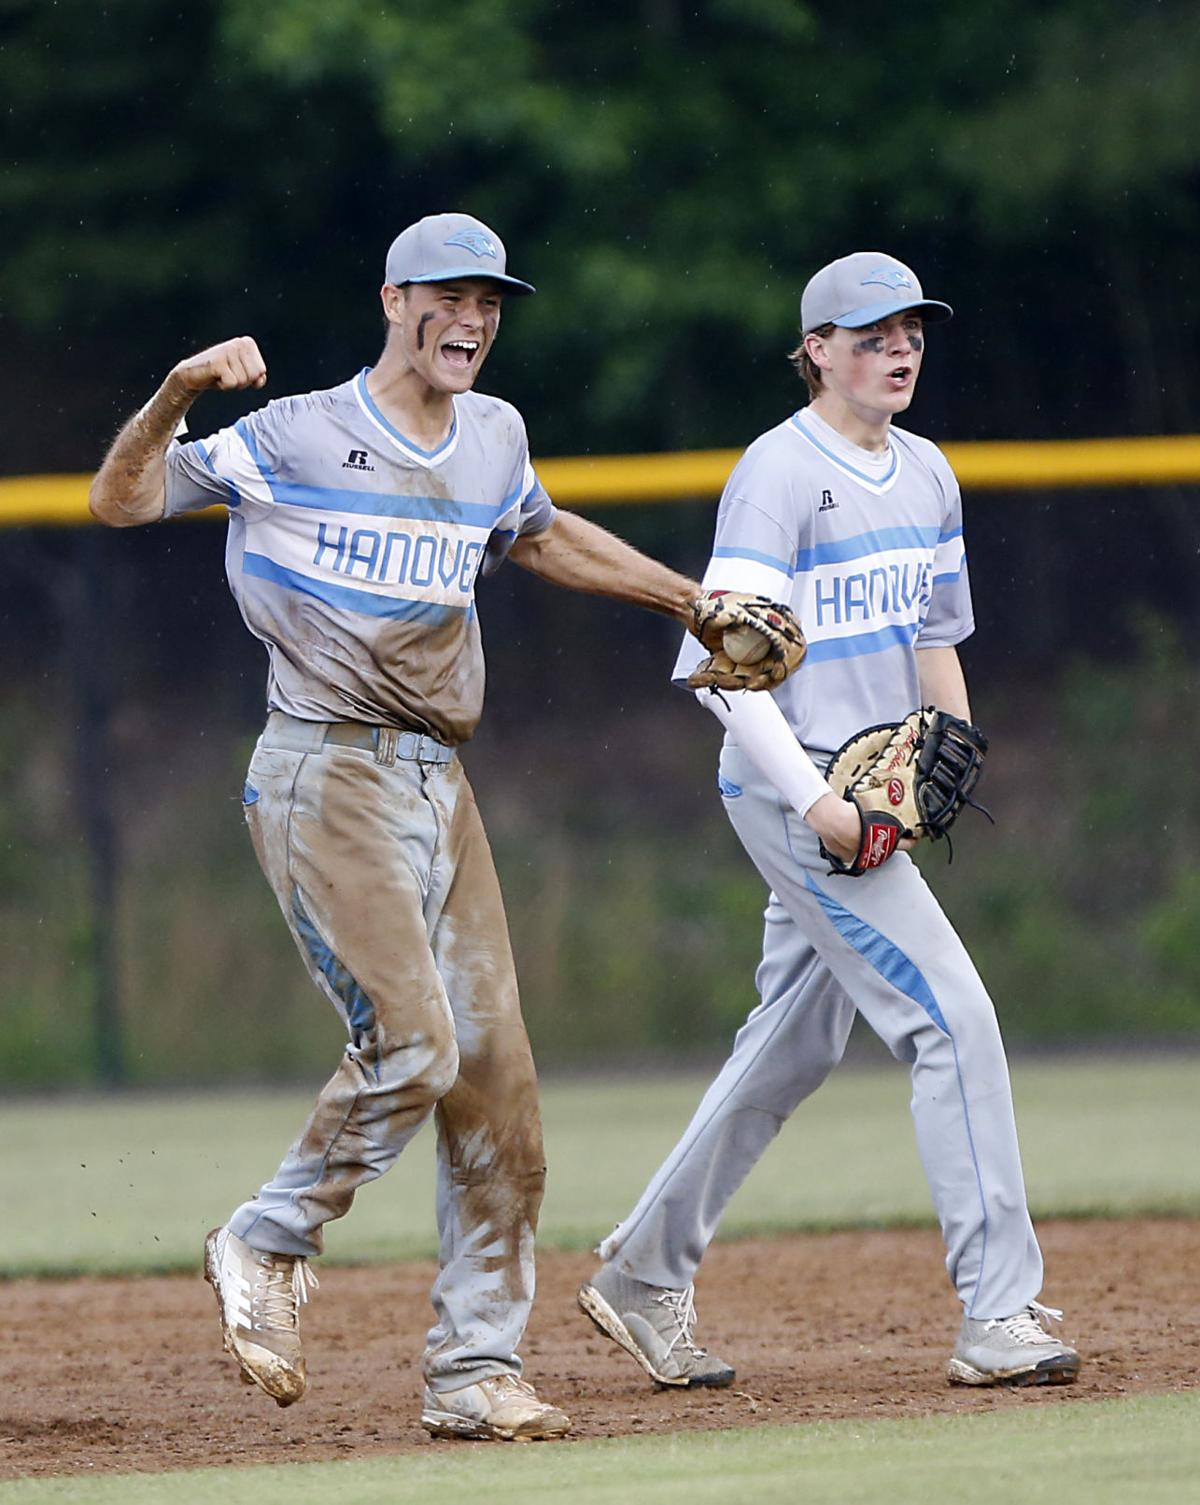 Hanover can't hold line, falls in 4B baseball semifinal